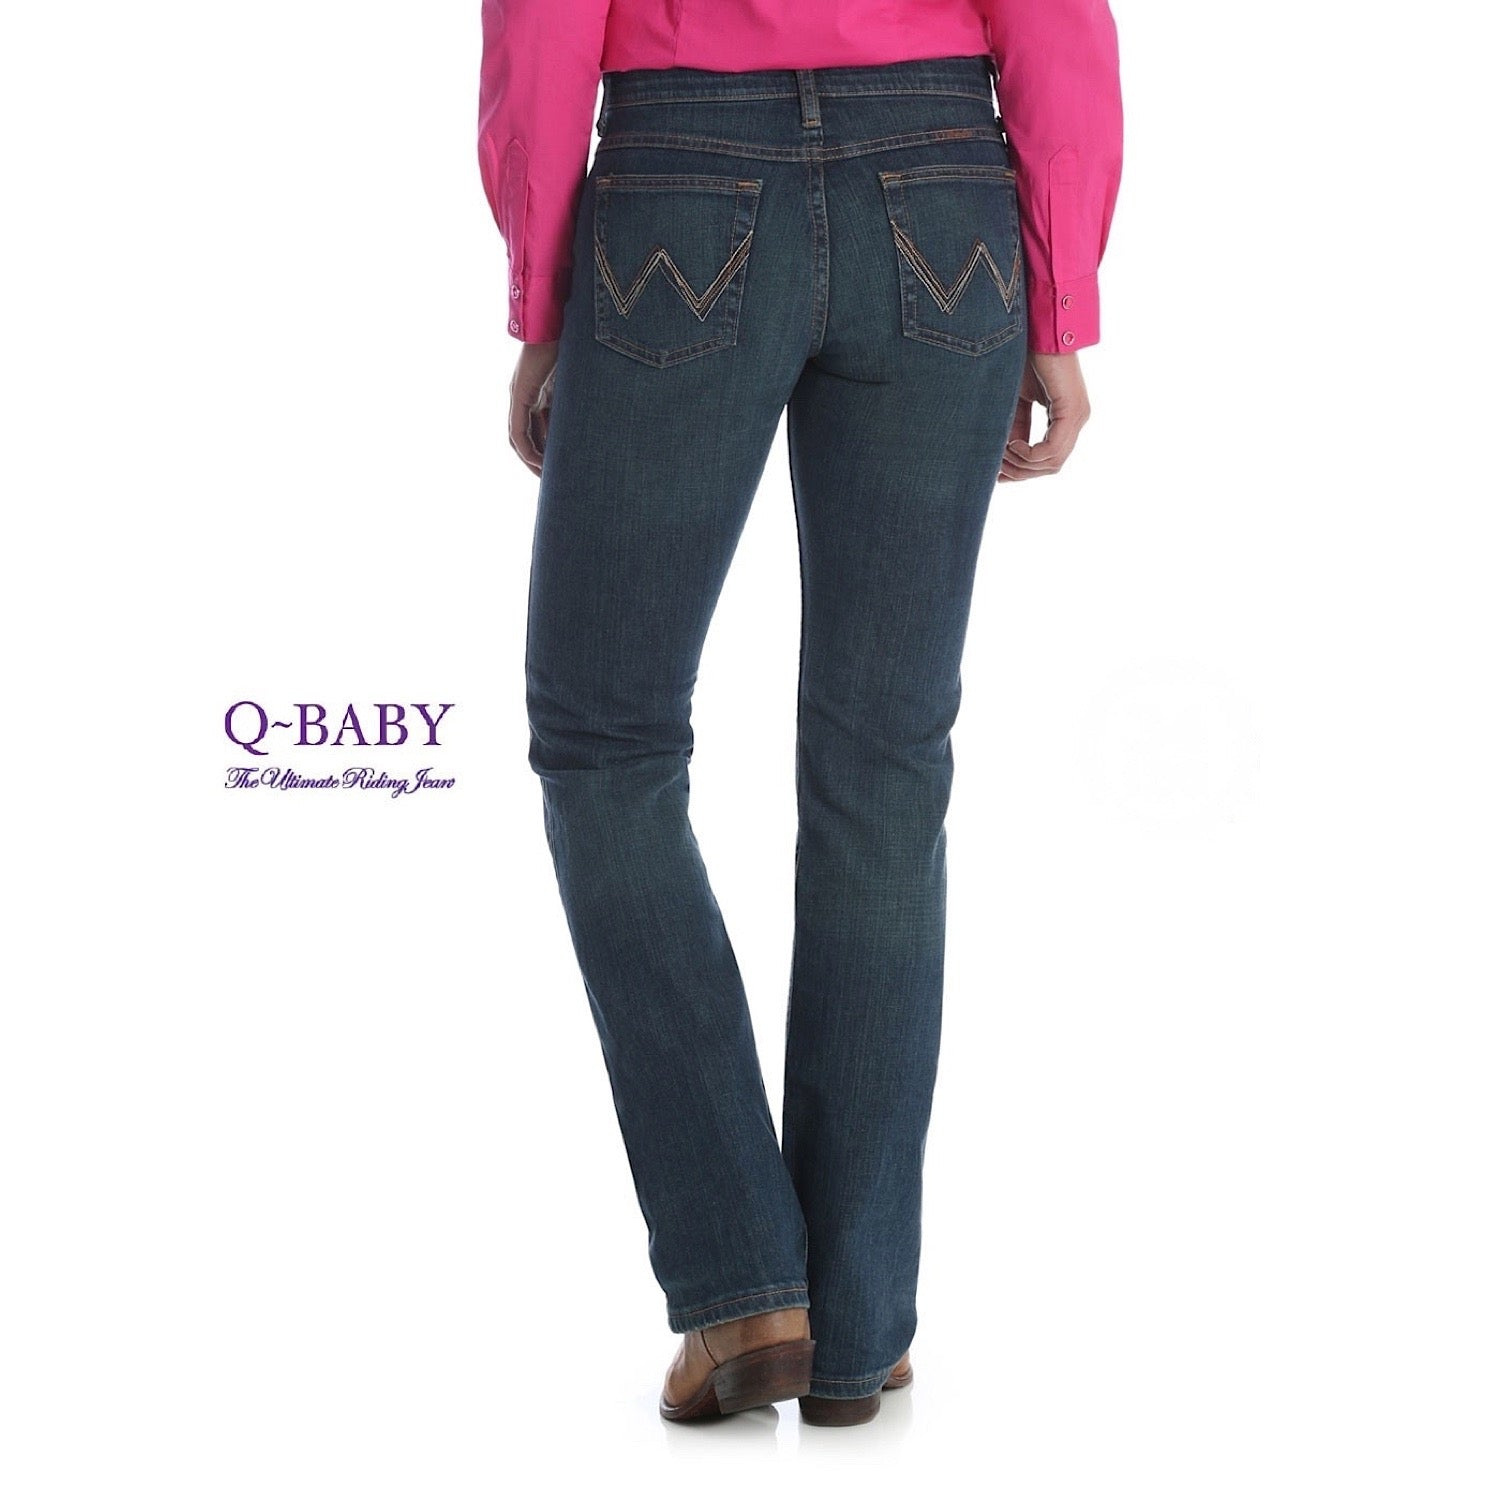 83d3f55b Buy Ladies Q-Baby Ultimate Riding Jean Sits Below Waist, Tuff Buck WRQ20TB  - The Stable Door